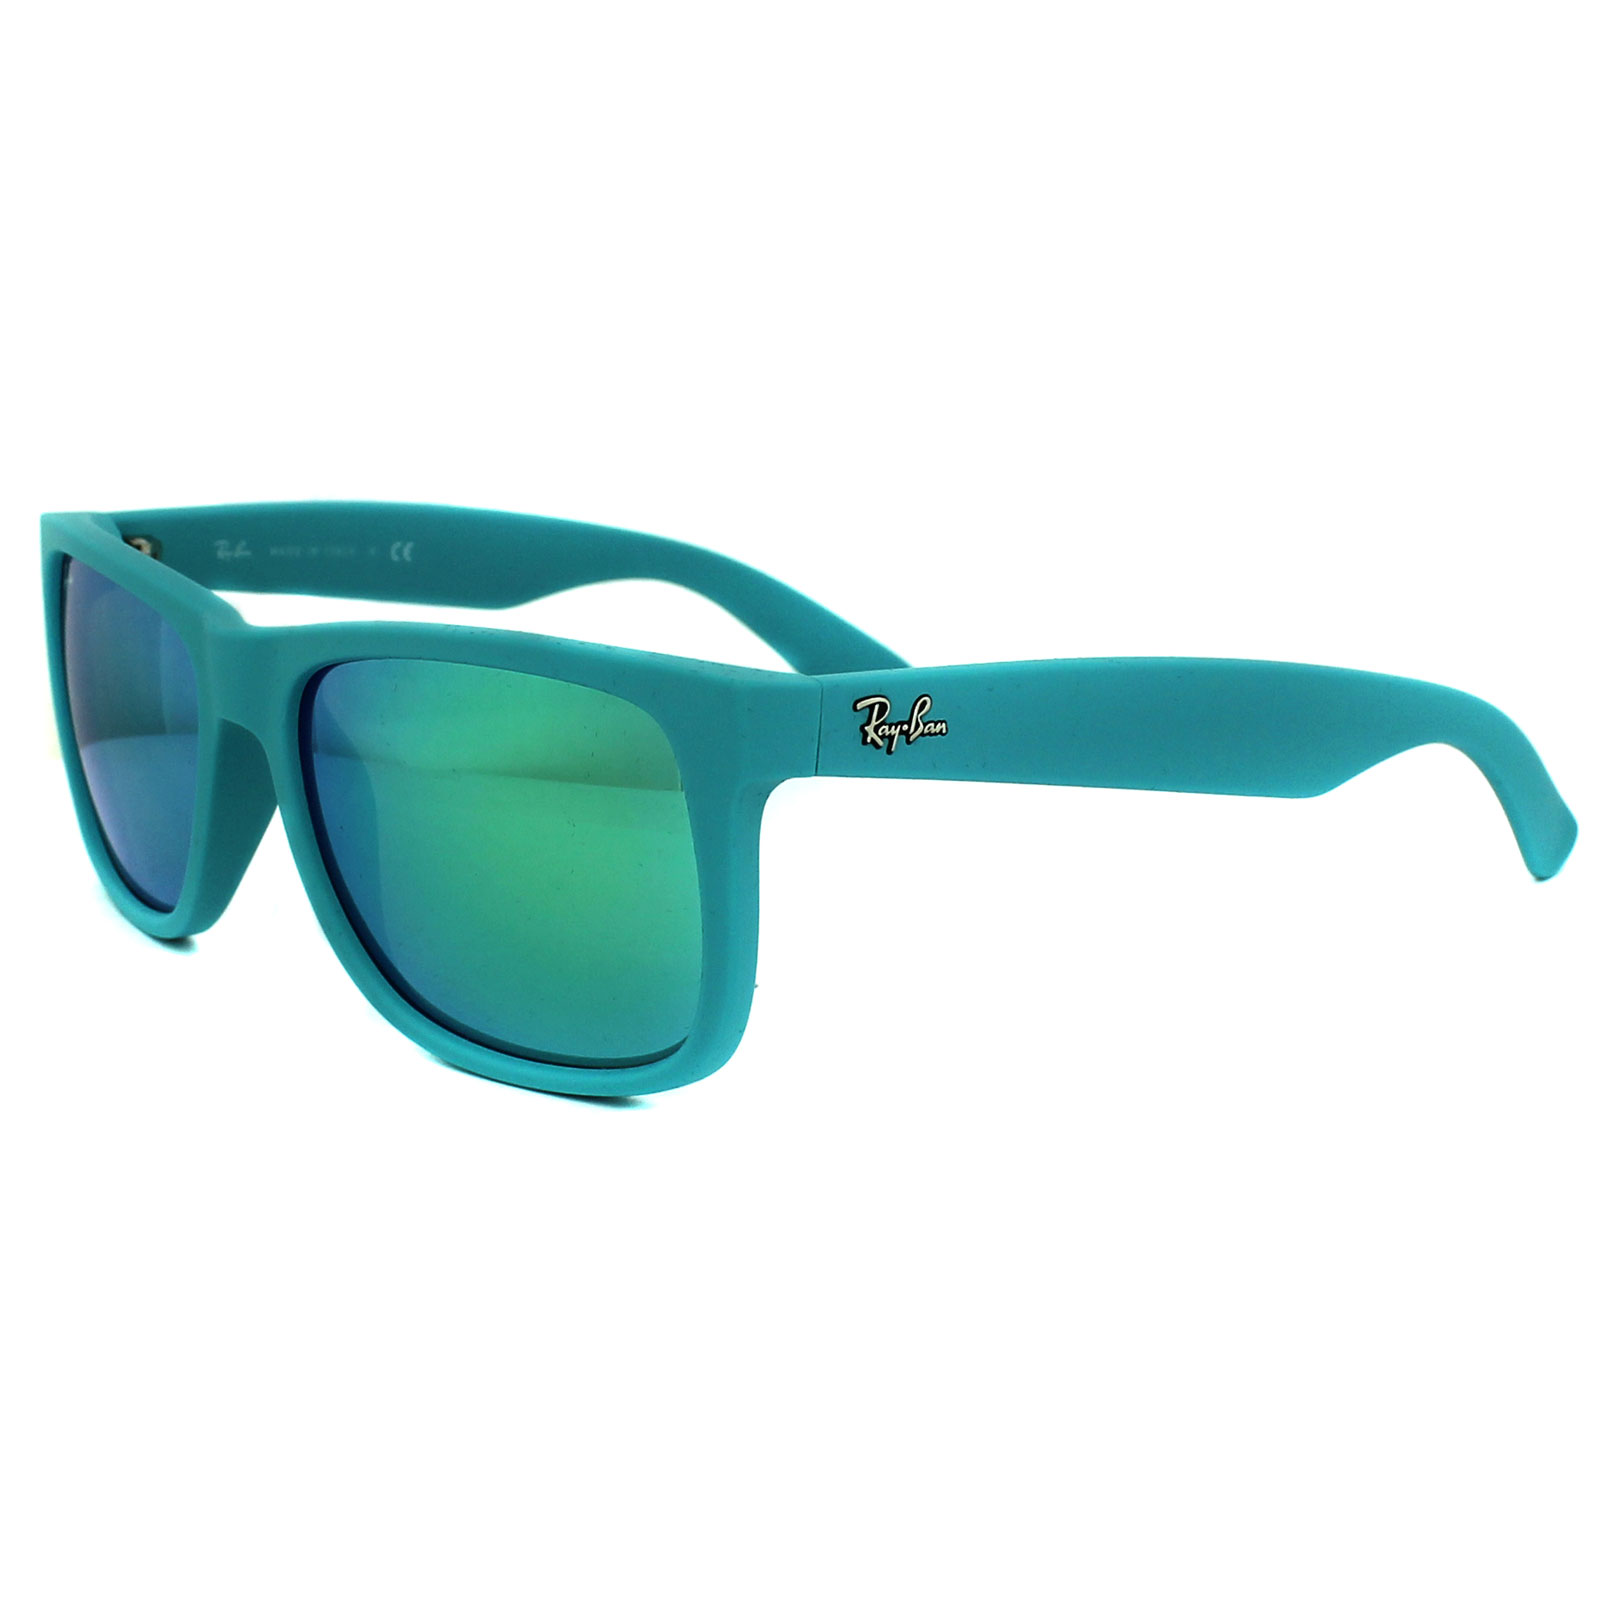 ray ban sunglasses ray ban official web site usa  ray ban solbriller ray ban official web site usa